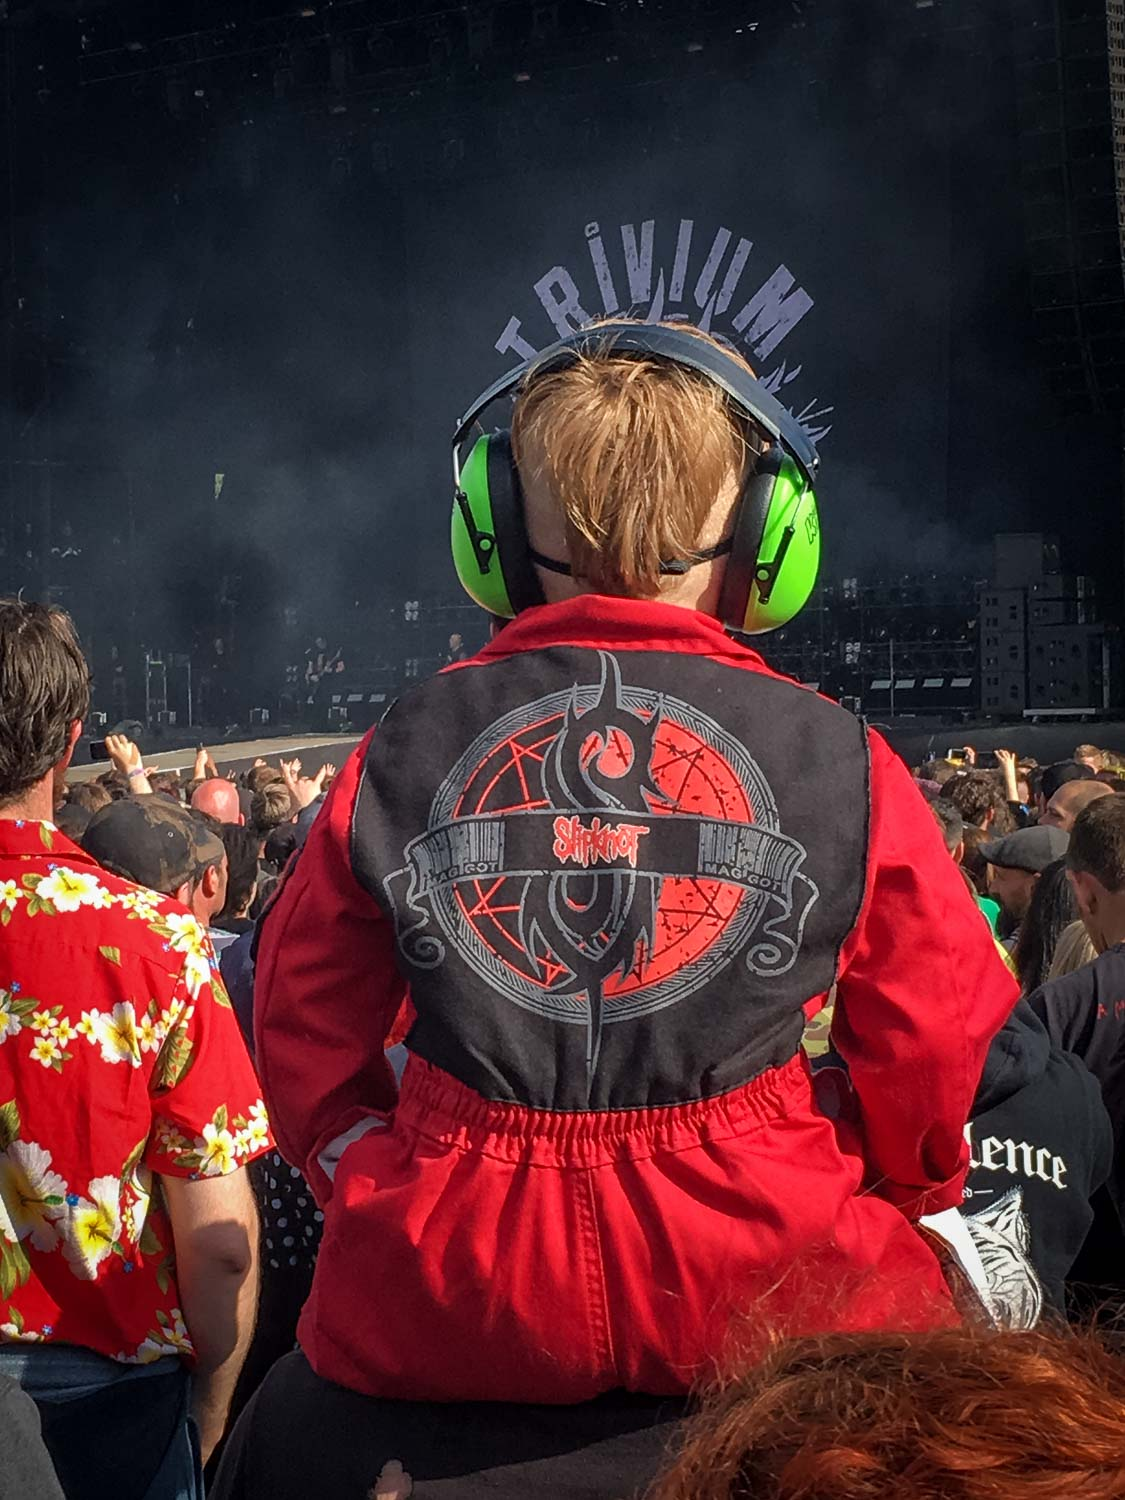 Probably the youngest fan of the festival